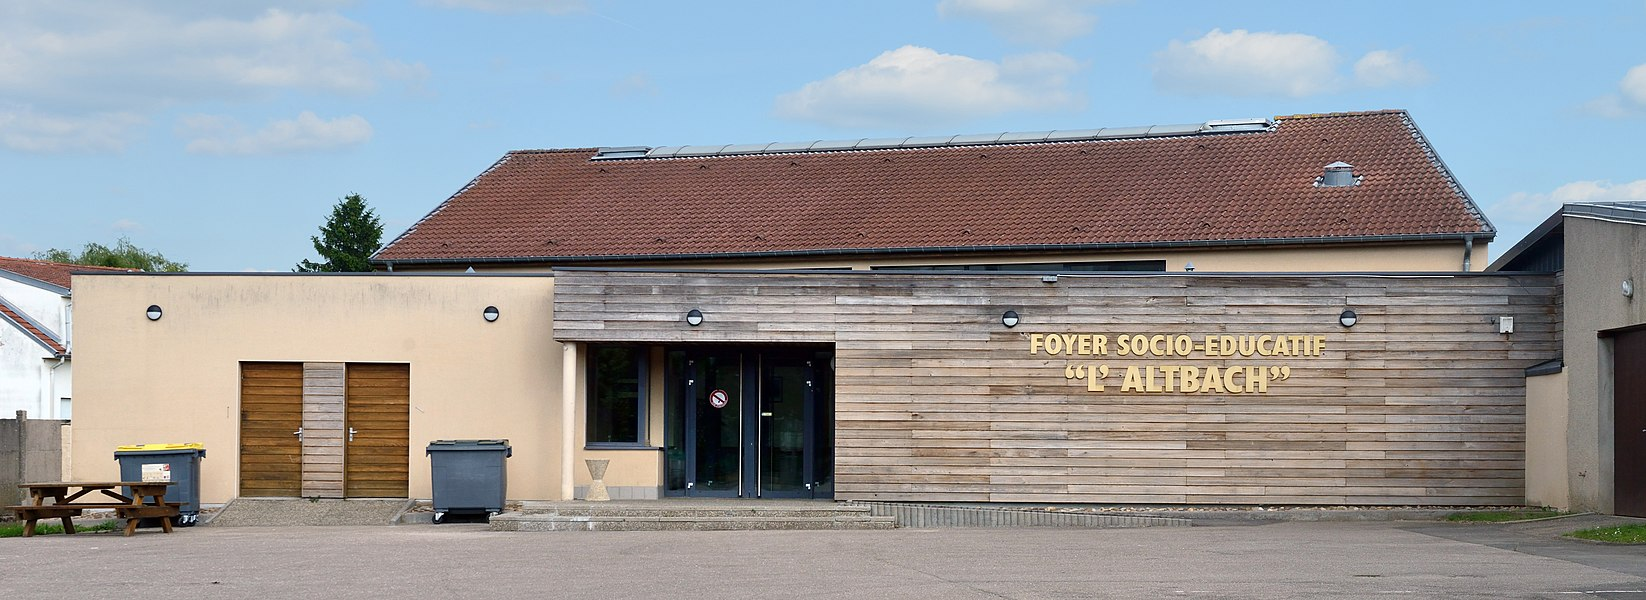 Socio-cultural centre in Mondorff, department of Moselle, France